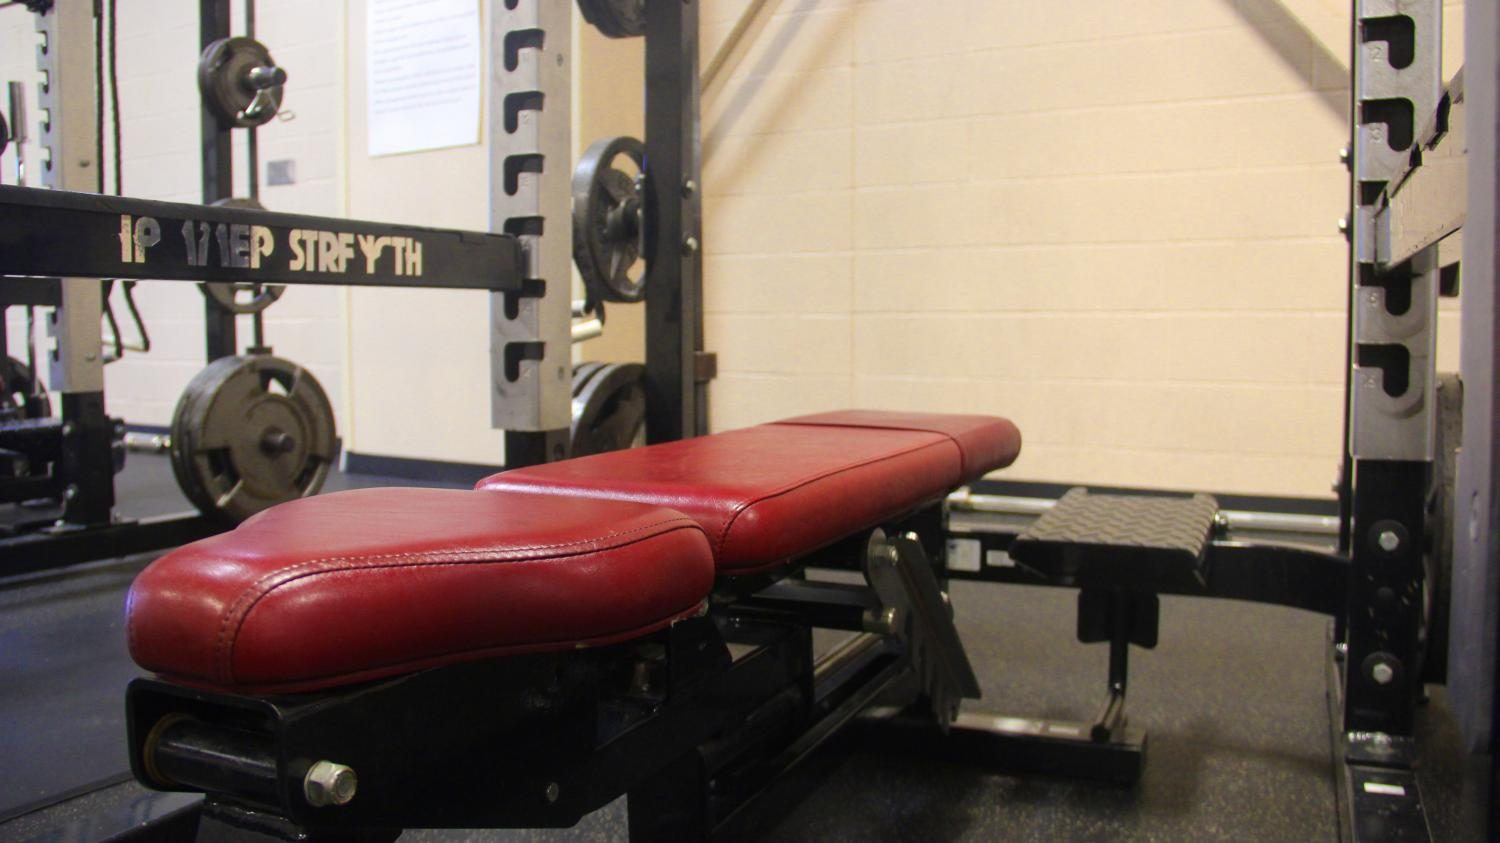 Serving+as+the+home+room+for+those+in+the+conditioning+class%2C+weight+racks+keep+weights+stored+safely.+The+new+weight+racks+were+added+when+conditioning+room+and+turf+room+were+added+to+the+school.